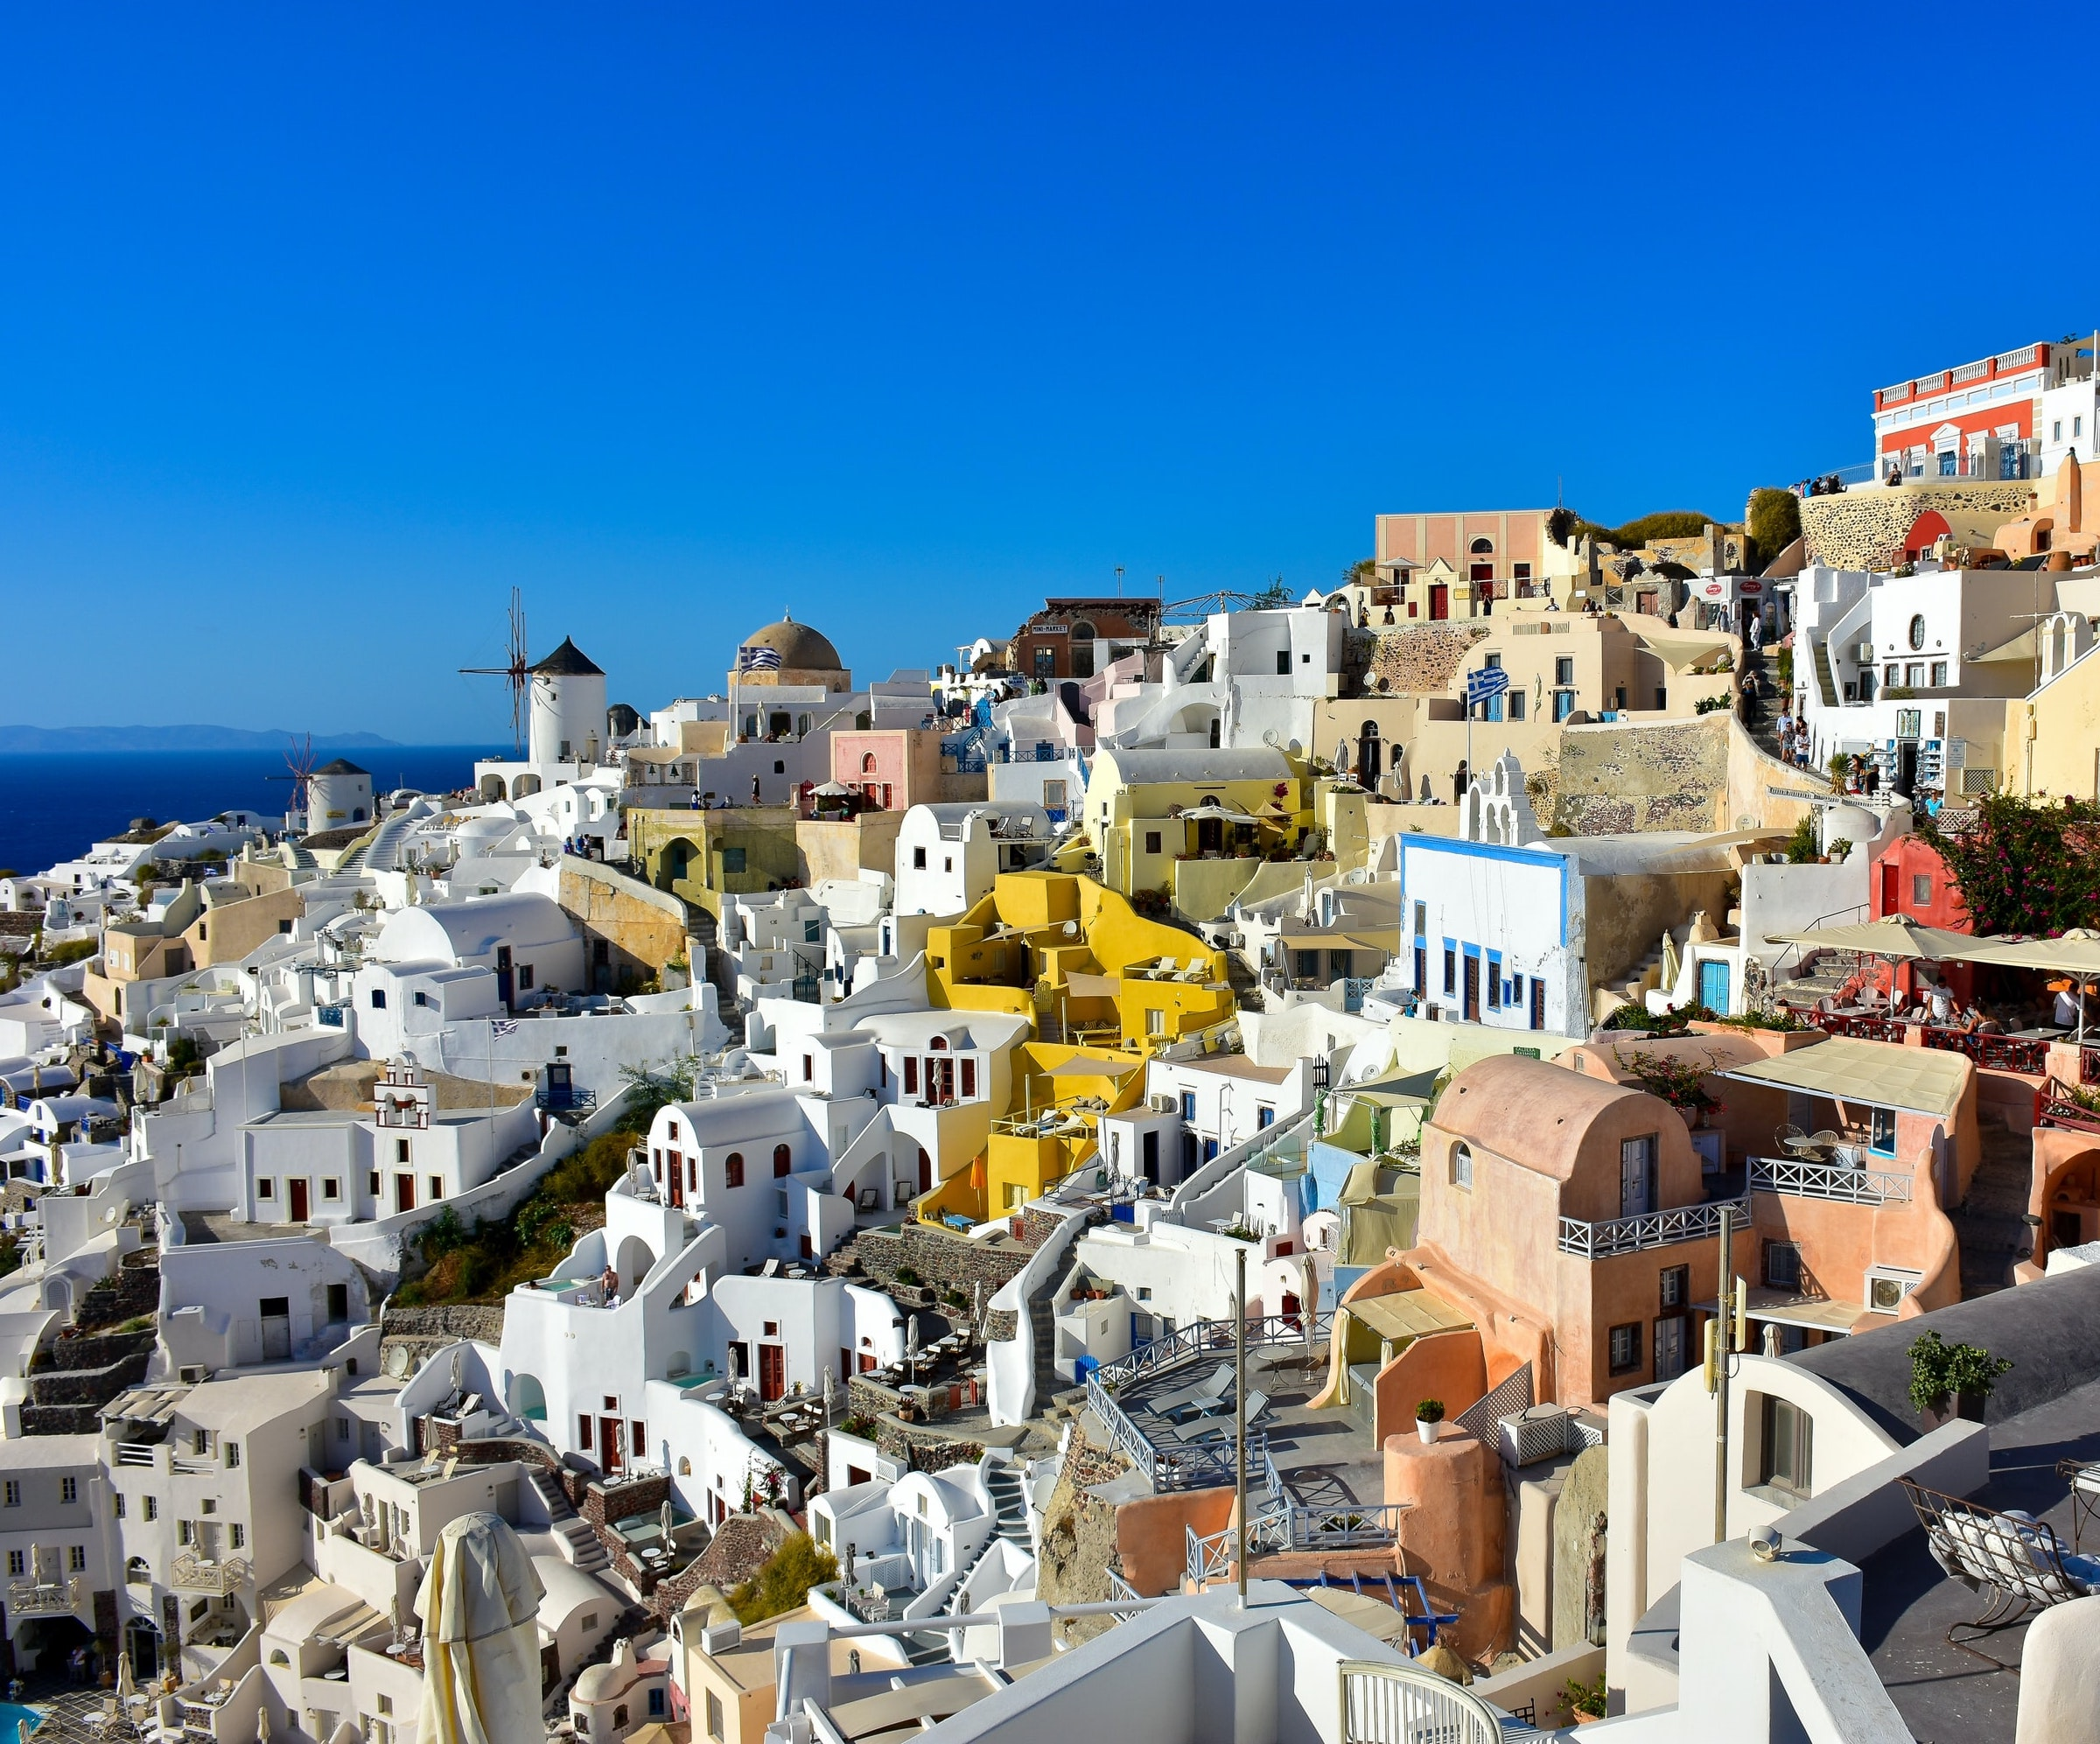 santorini greece greek city ancient wanderlust vacation travel travelers summer beautiful destination mediterranean